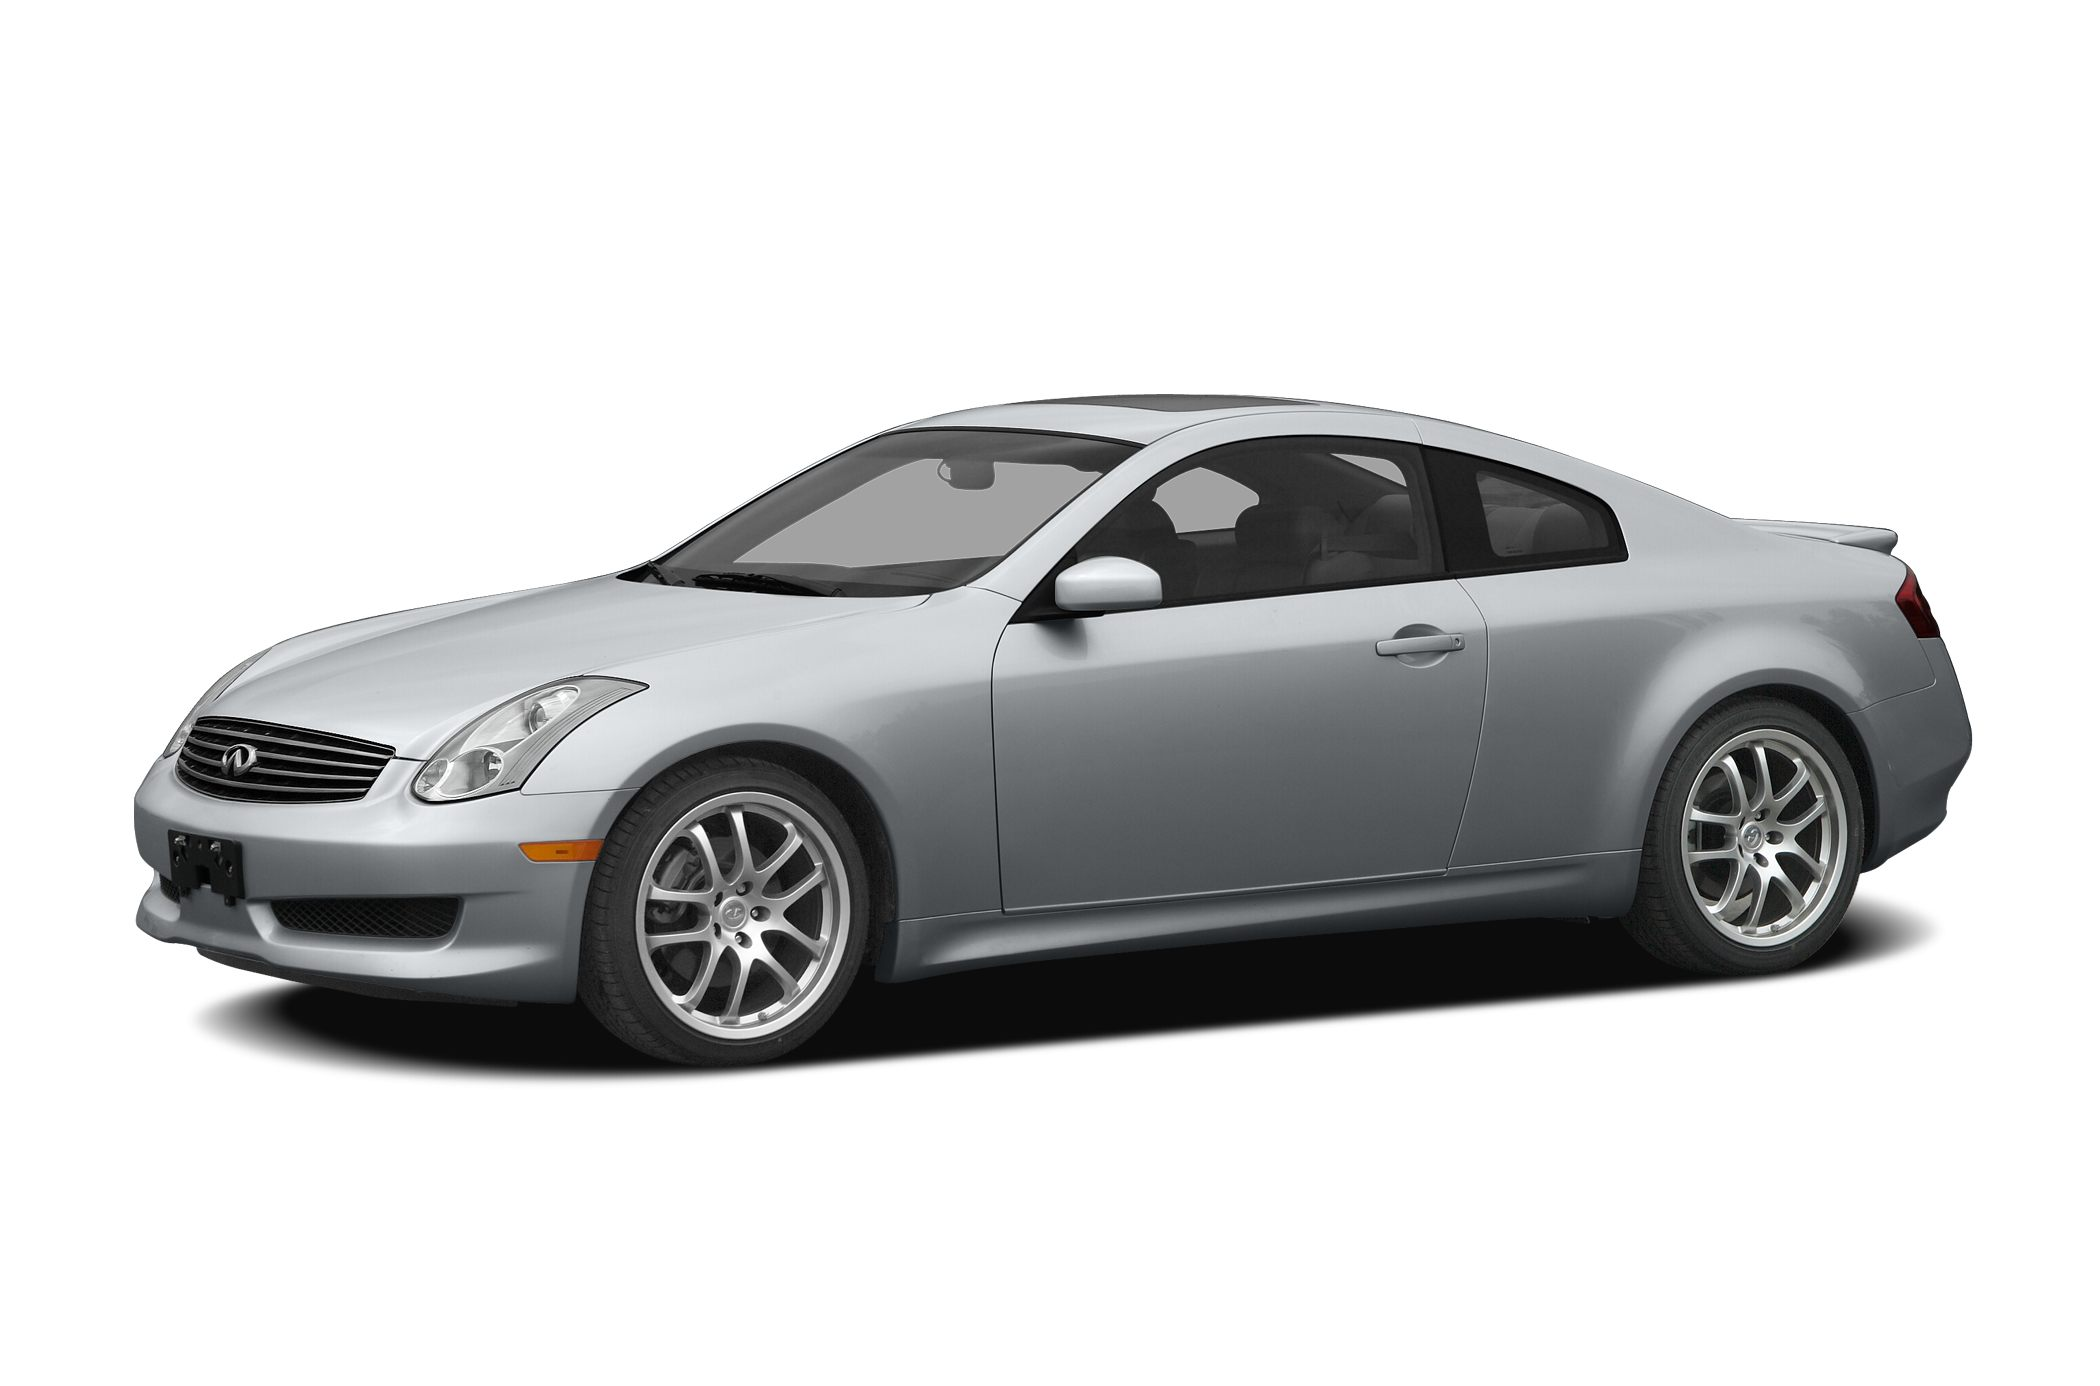 2007 Infiniti G35 Base Coupe for sale in Lansdale for $10,890 with 93,341 miles.